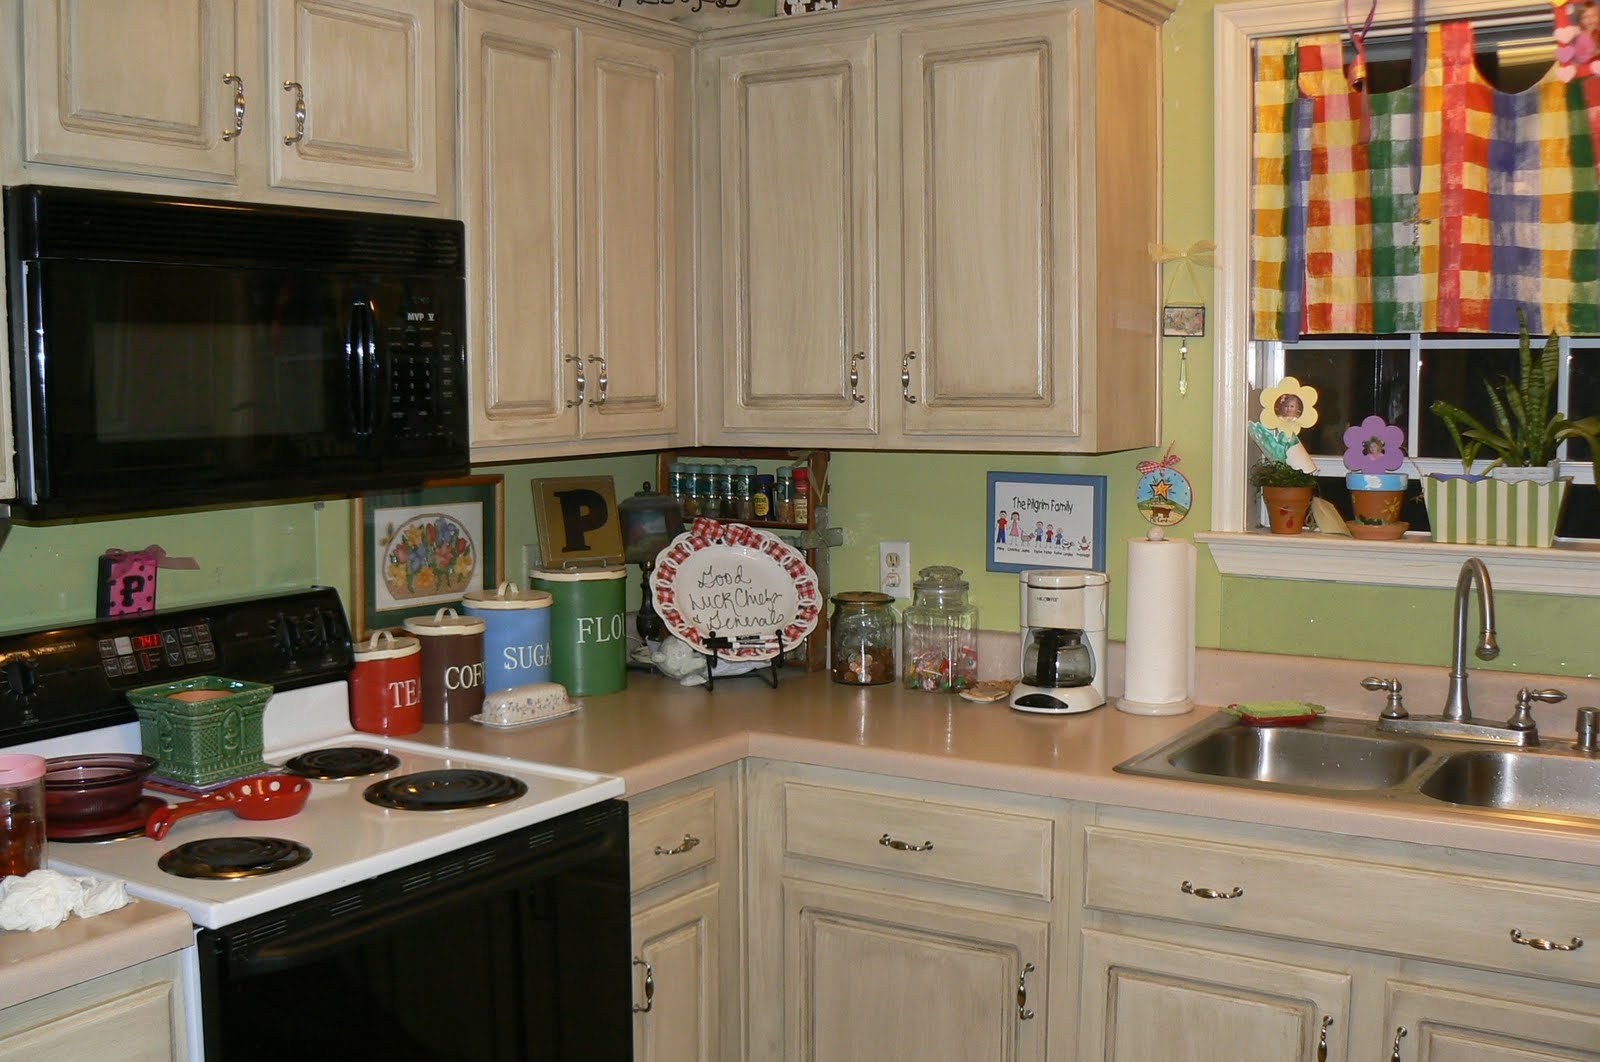 Kitchen Cabinets Painted With Glaze my 4littlepilgrims: painted and glazed kitchen cabinets